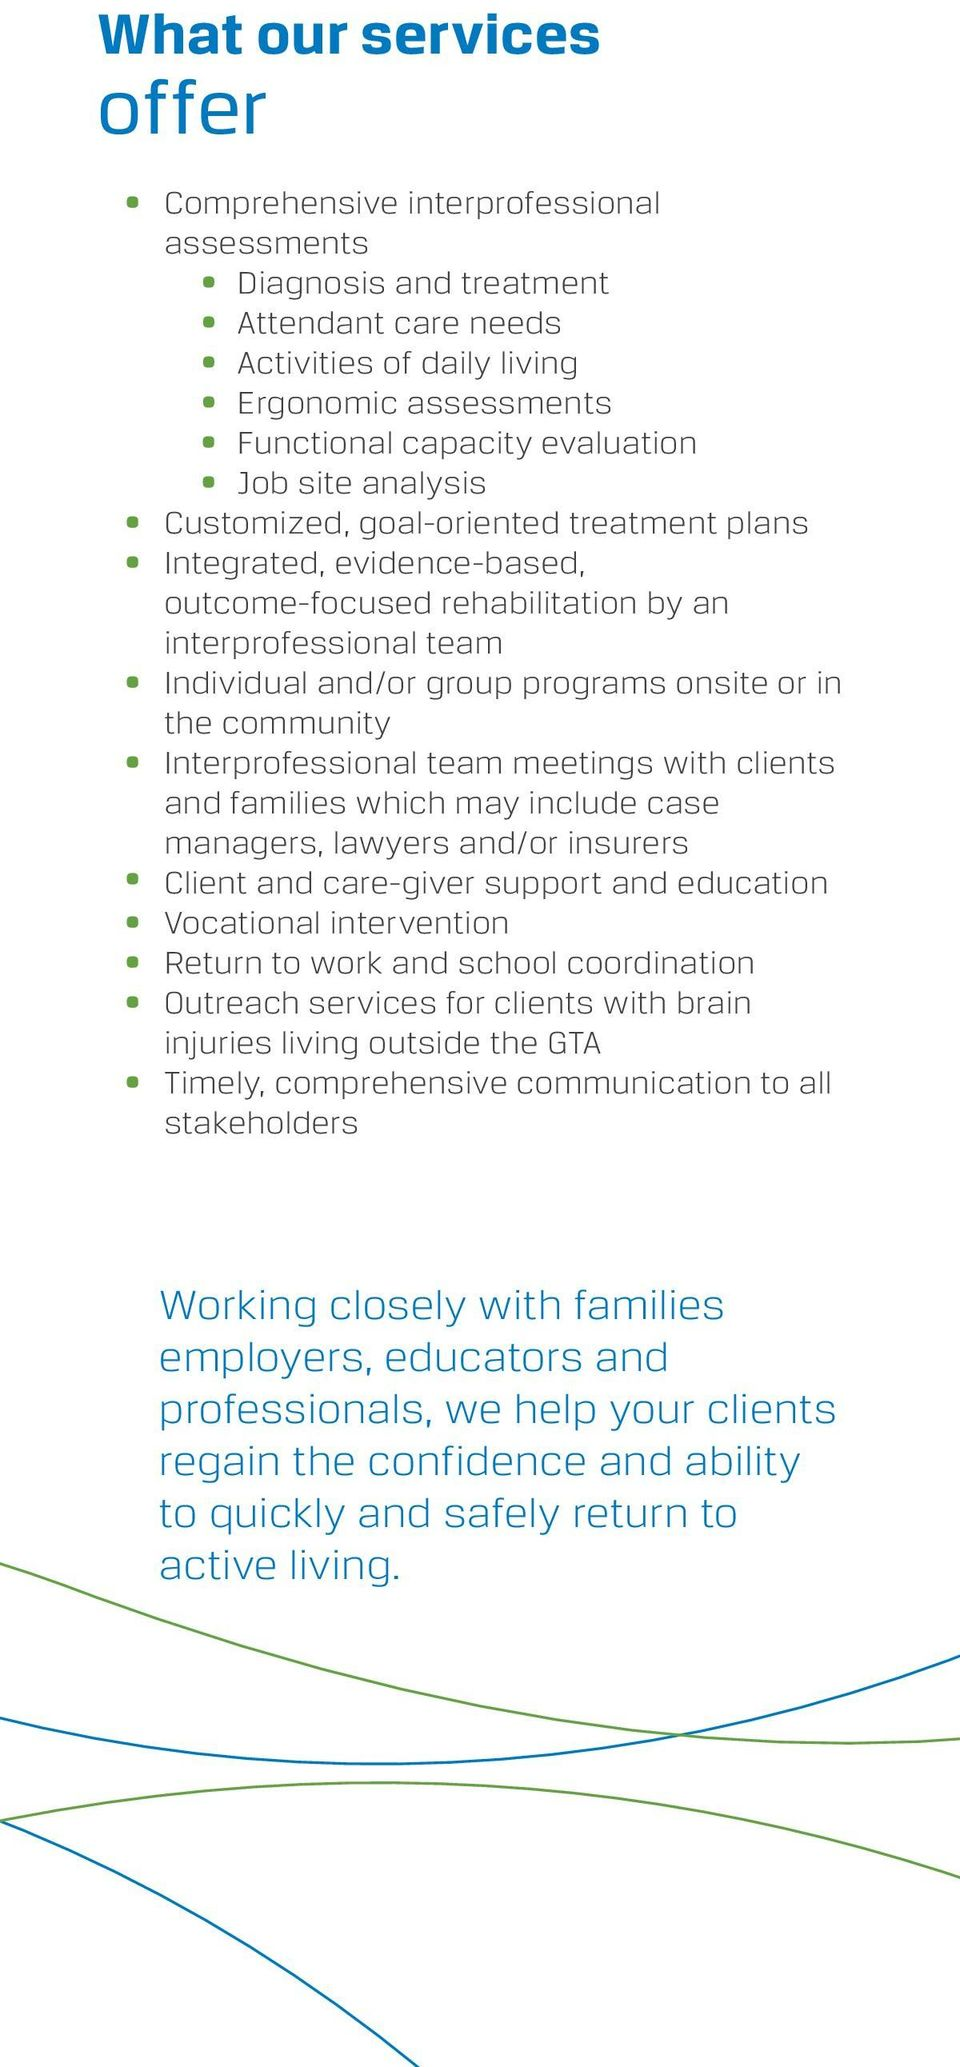 community Interprofessional team meetings with clients and families which may include case managers, lawyers and/or insurers Client and care-giver support and education Vocational intervention Return